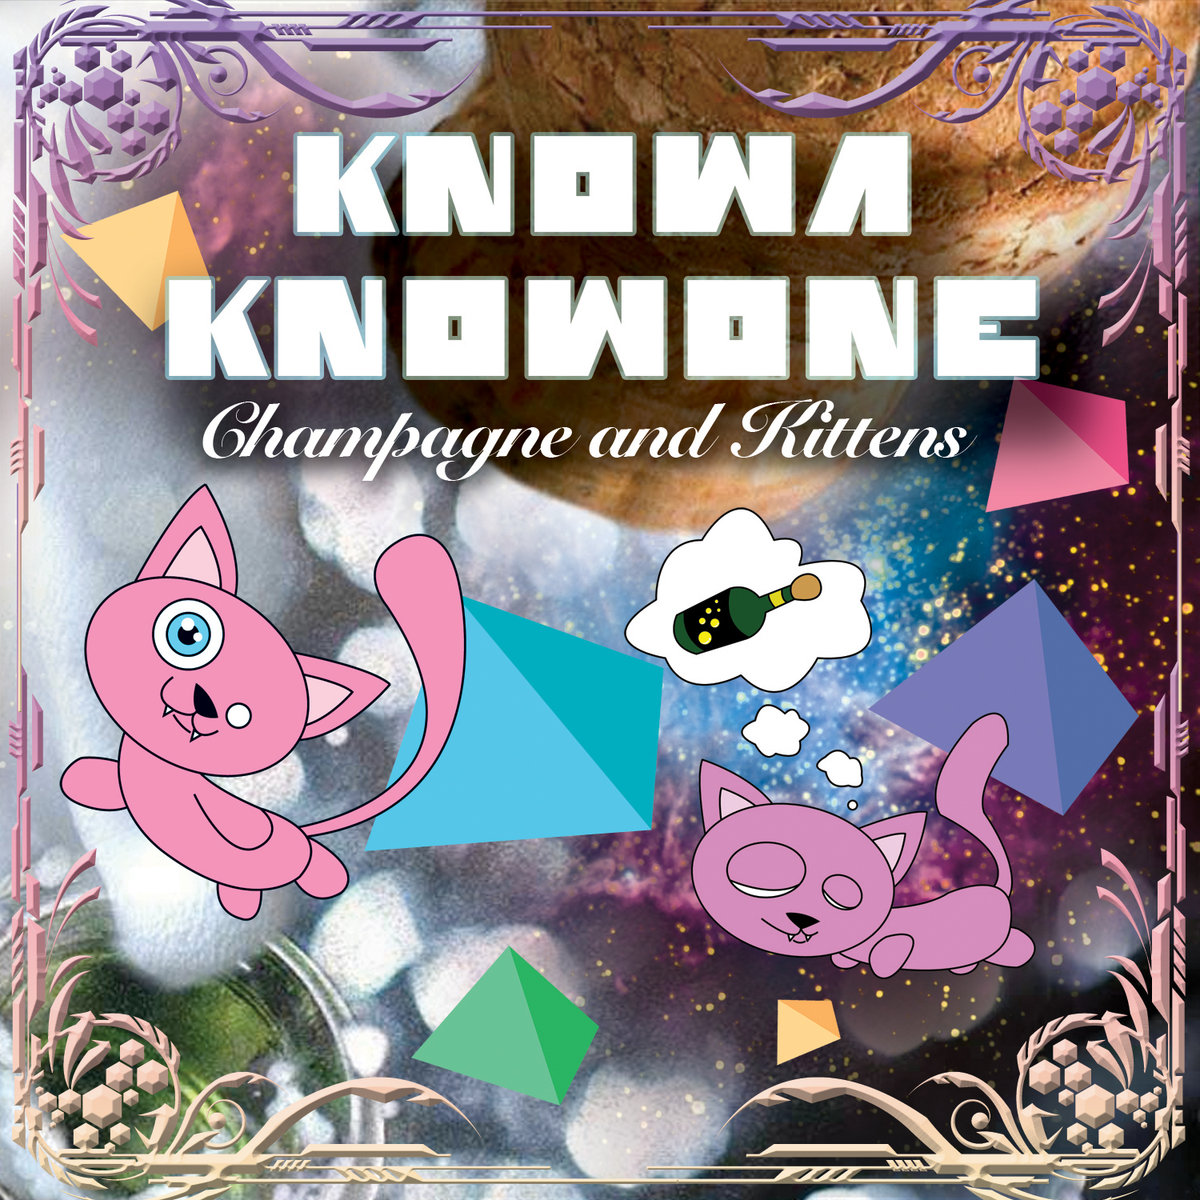 Knowa Knowone feat. Bast - Siren Devedasi @ 'Champagne and Kittens' album (bass, electronic)